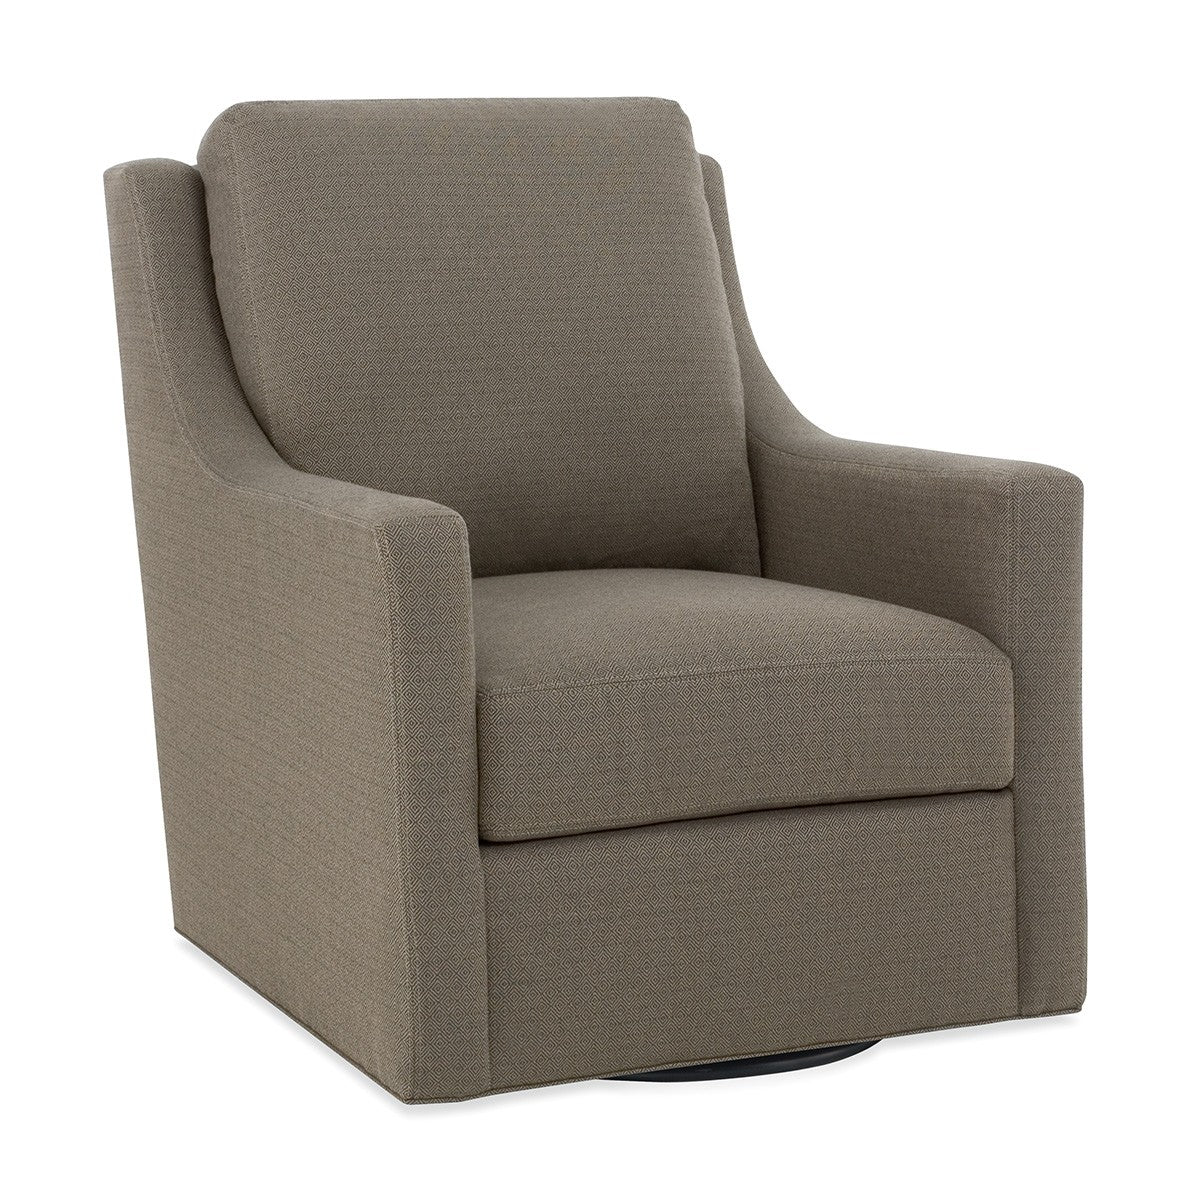 Heath Swivel Glider Chair